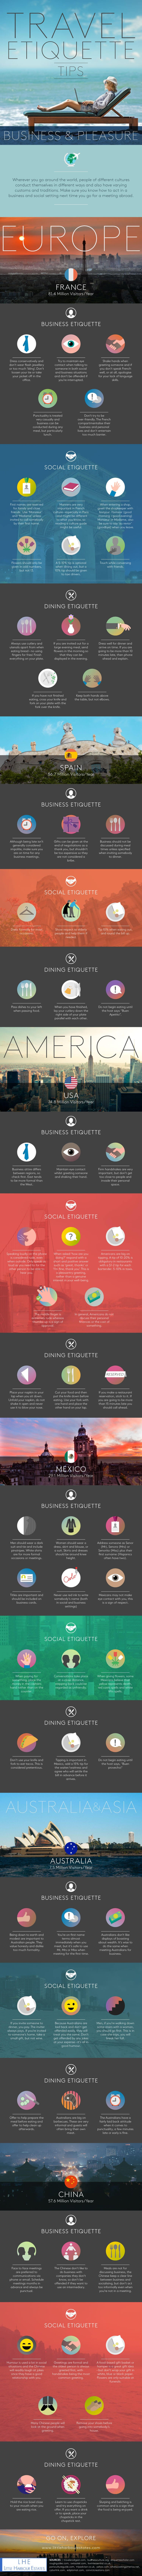 Travel Etiquette Tips - Infographic